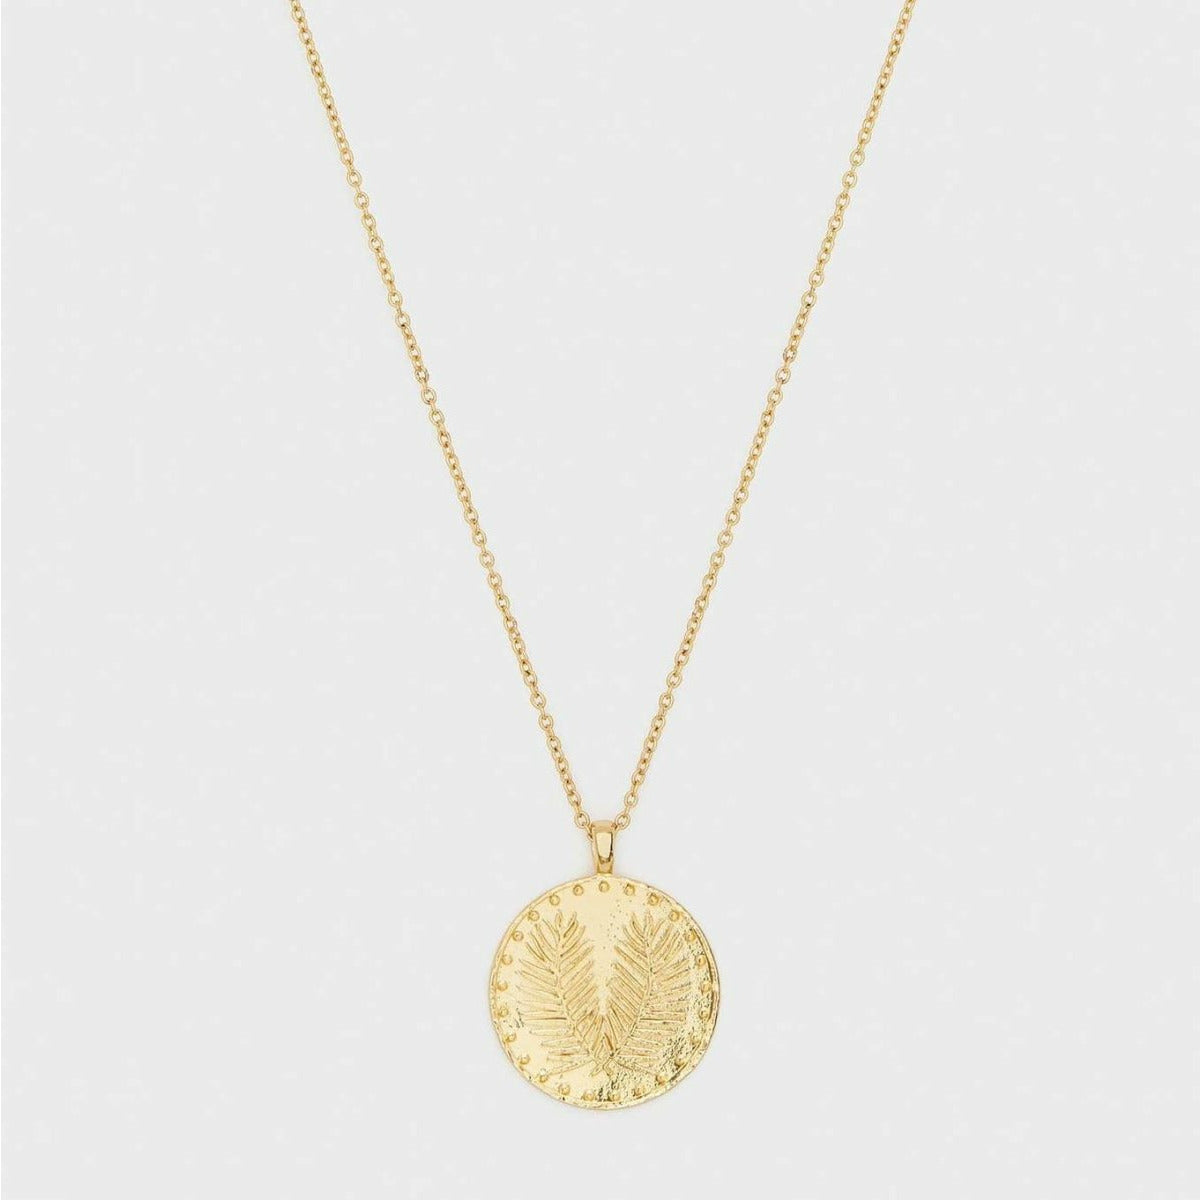 GORJANA JEWELRY // PALM COIN NECKLACE // GOLD - Las Olas